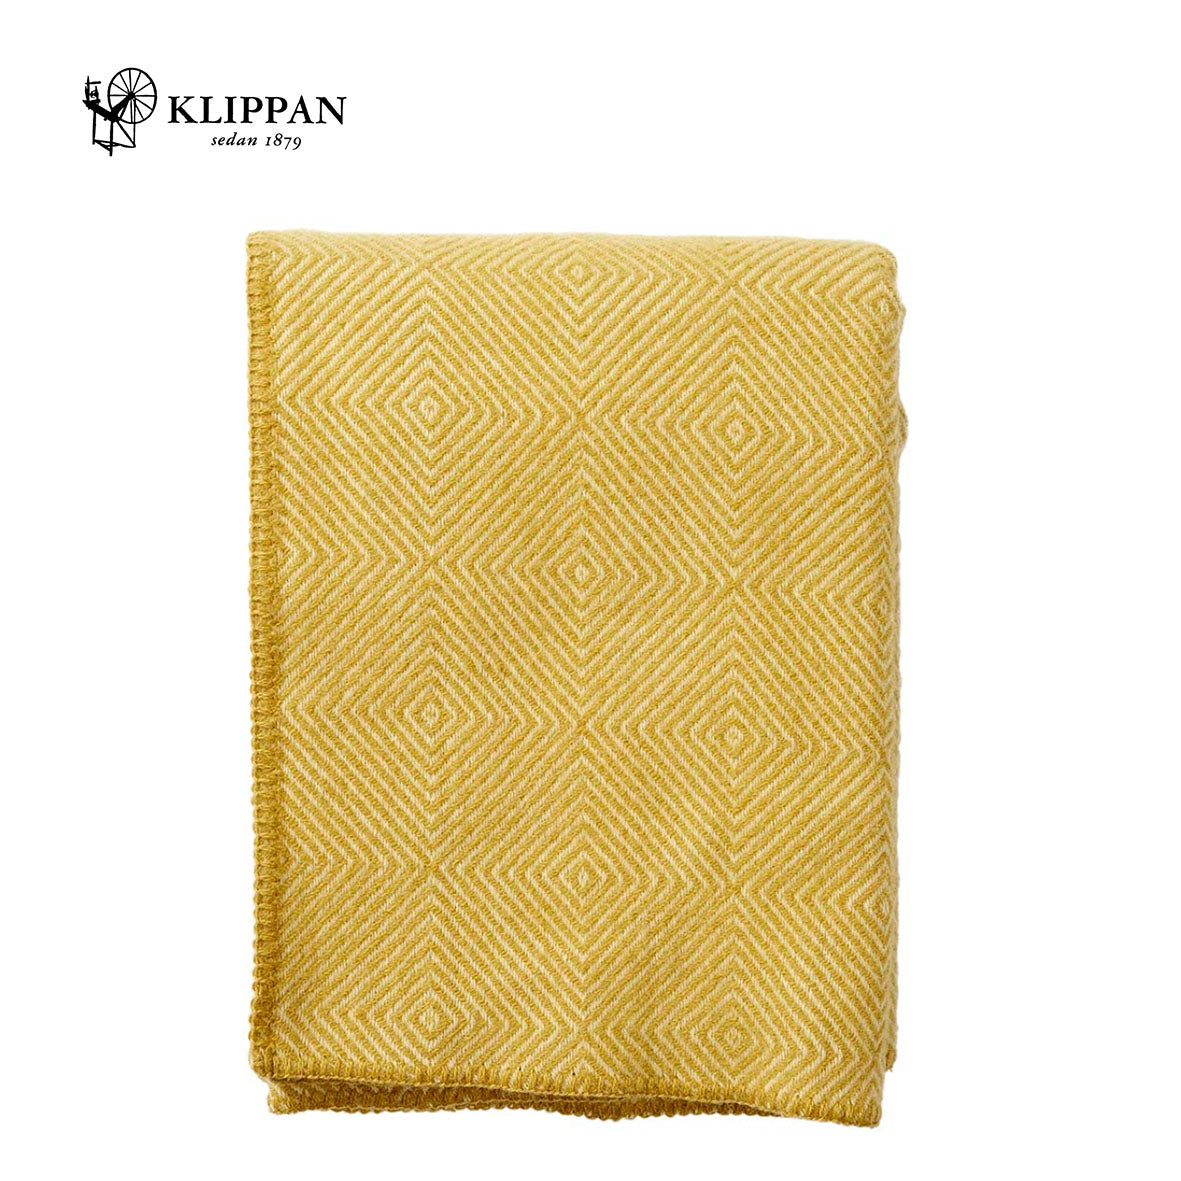 KLIPPAN Nova Woollen Throw, 130x180cm